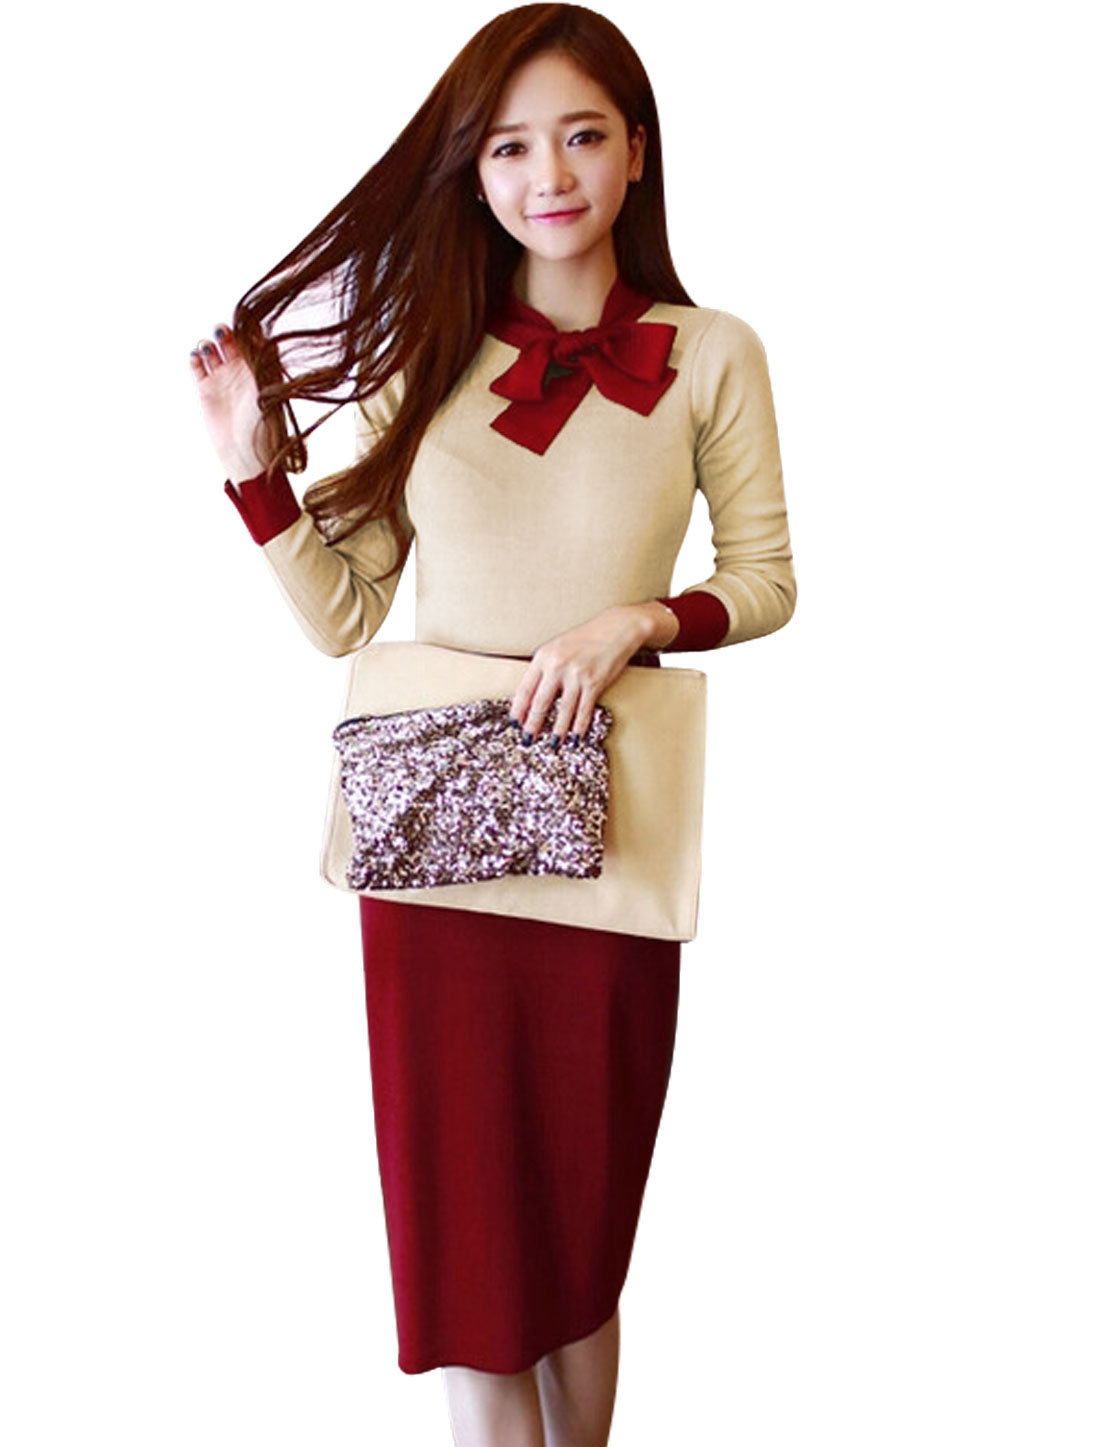 Women Tie Bow Neck Knit Top w Elastic Waist Knit Skirt Sets Burgundy Beige XS